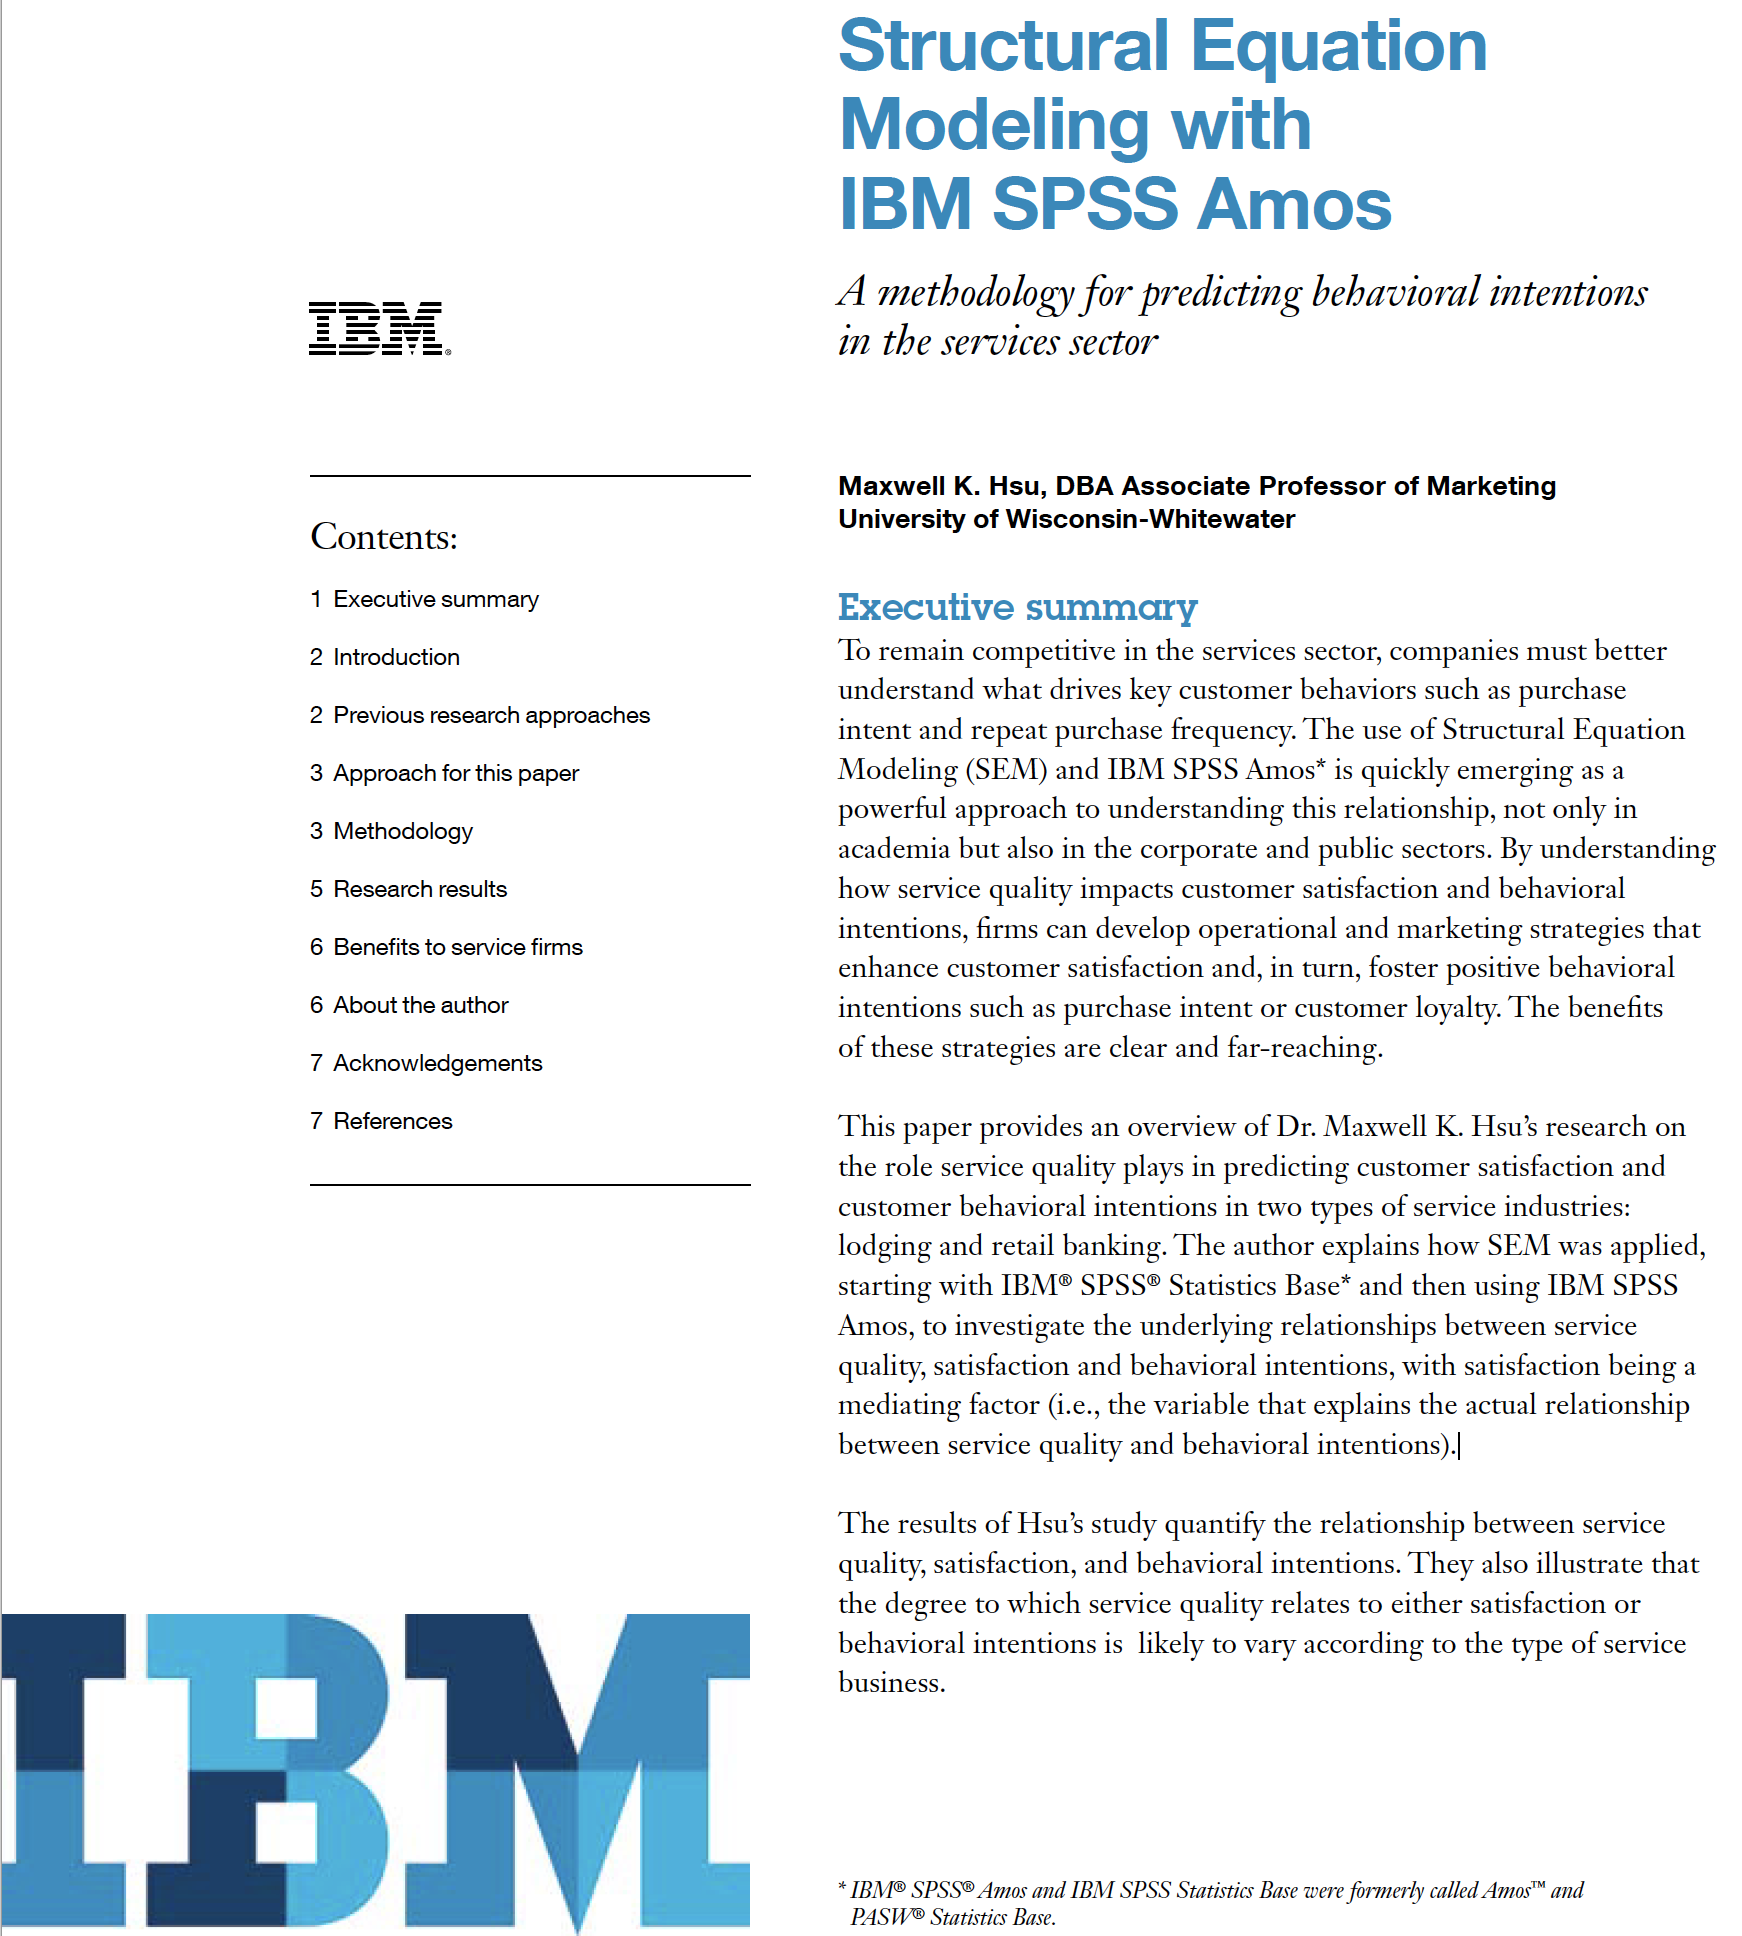 Structural equation modelling with IBM SPSS Amos